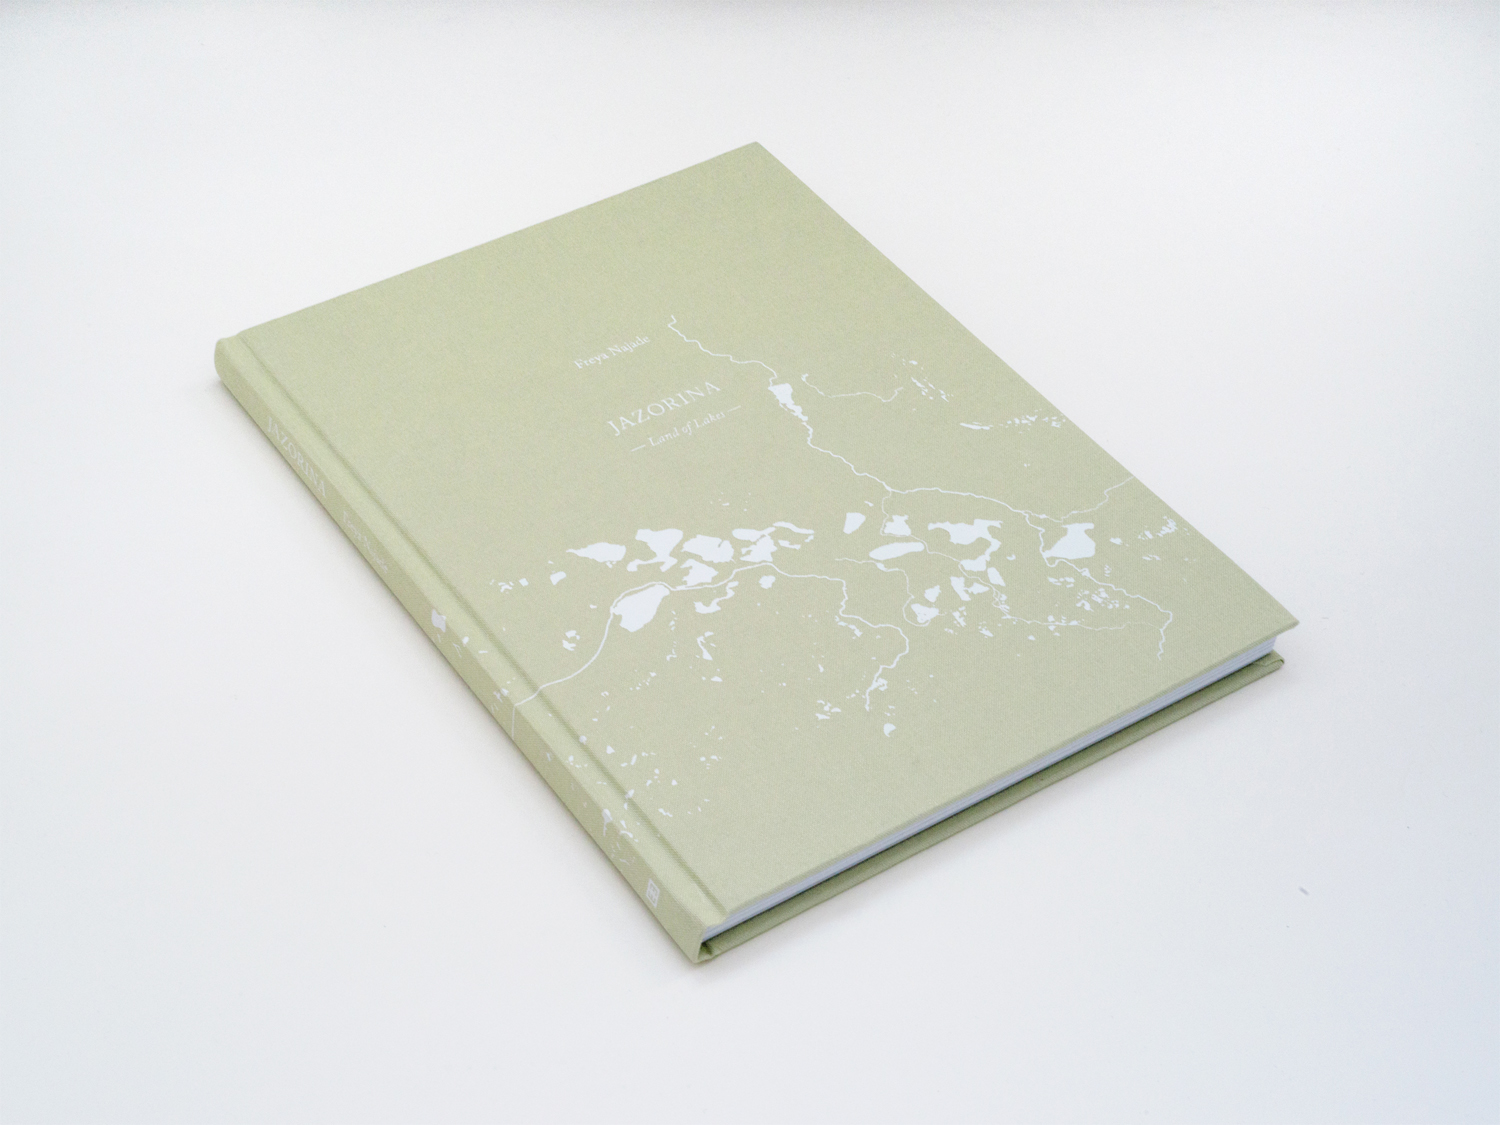 Jazorina  Publisher: Kehrer Verlag Texts: Lucy Davies and Tina Veihelmann  Hardcover, embossed 18,5 x 24 cm 104 pages 53 color ills.  German/English May 2016